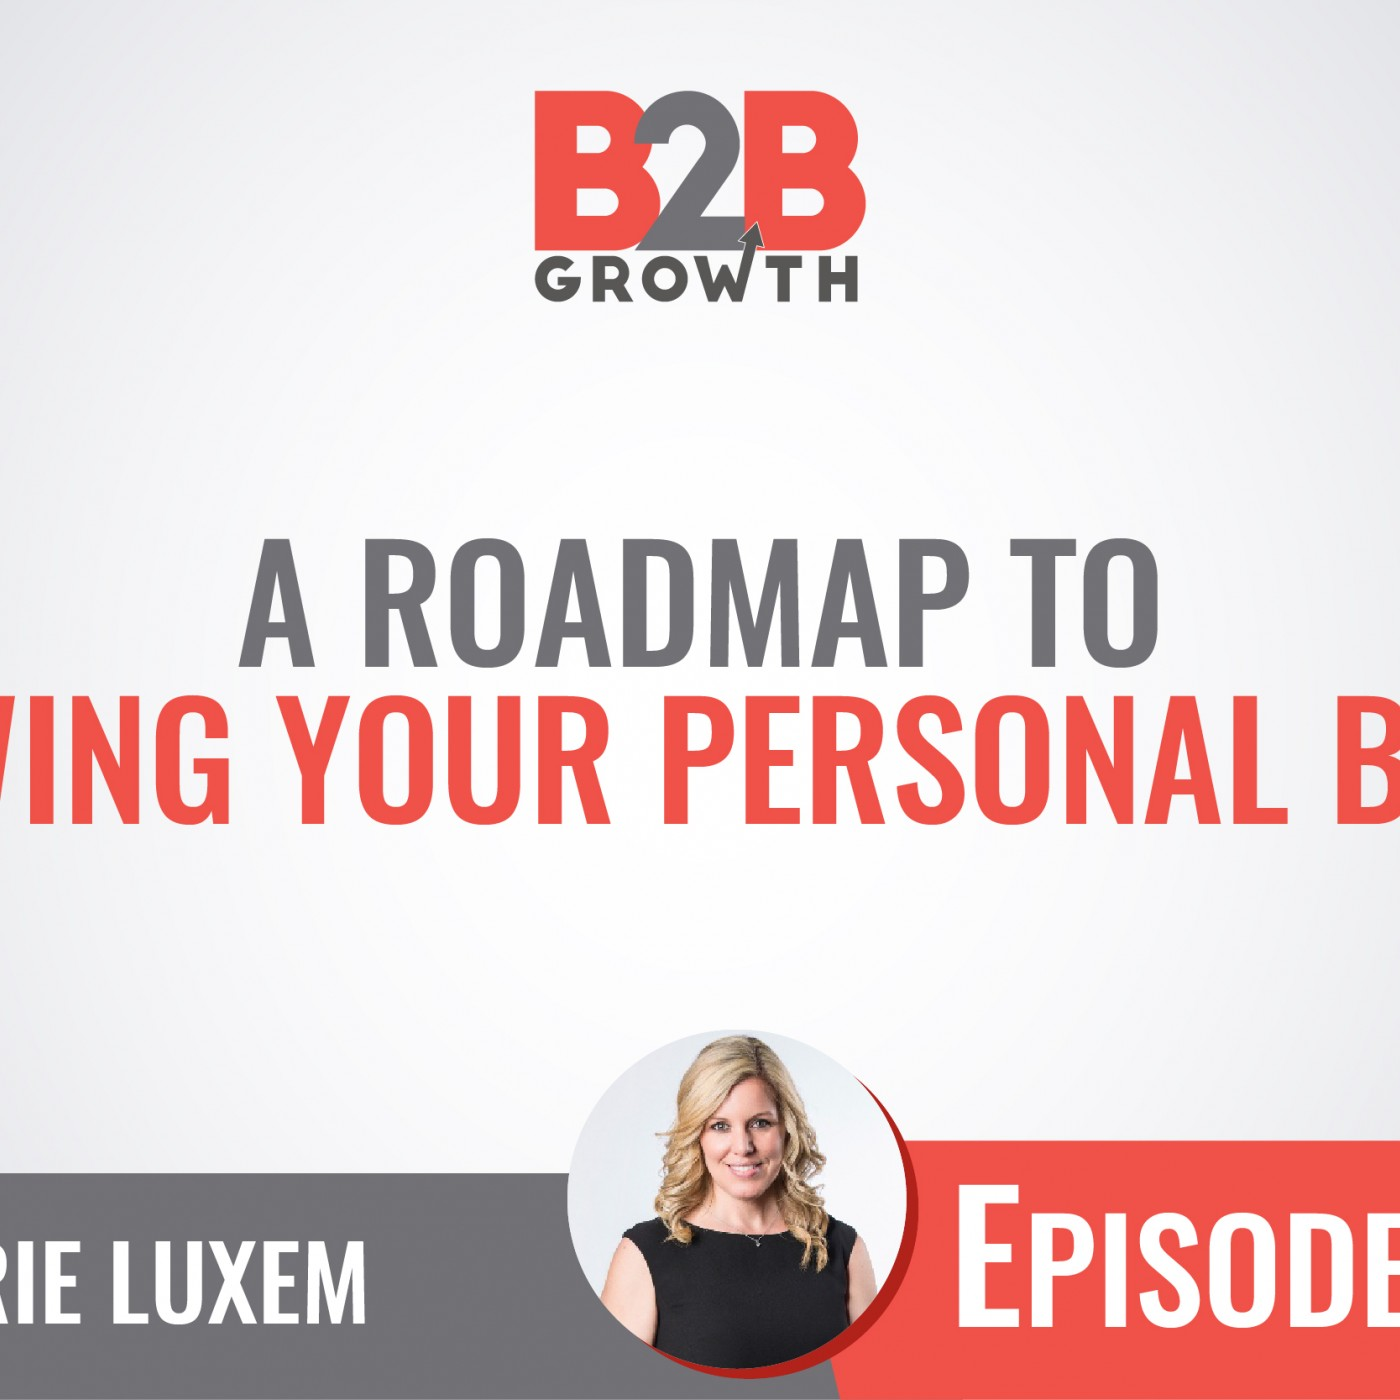 595: A Roadmap to Growing Your Personal Brand w/ Carrie Luxem